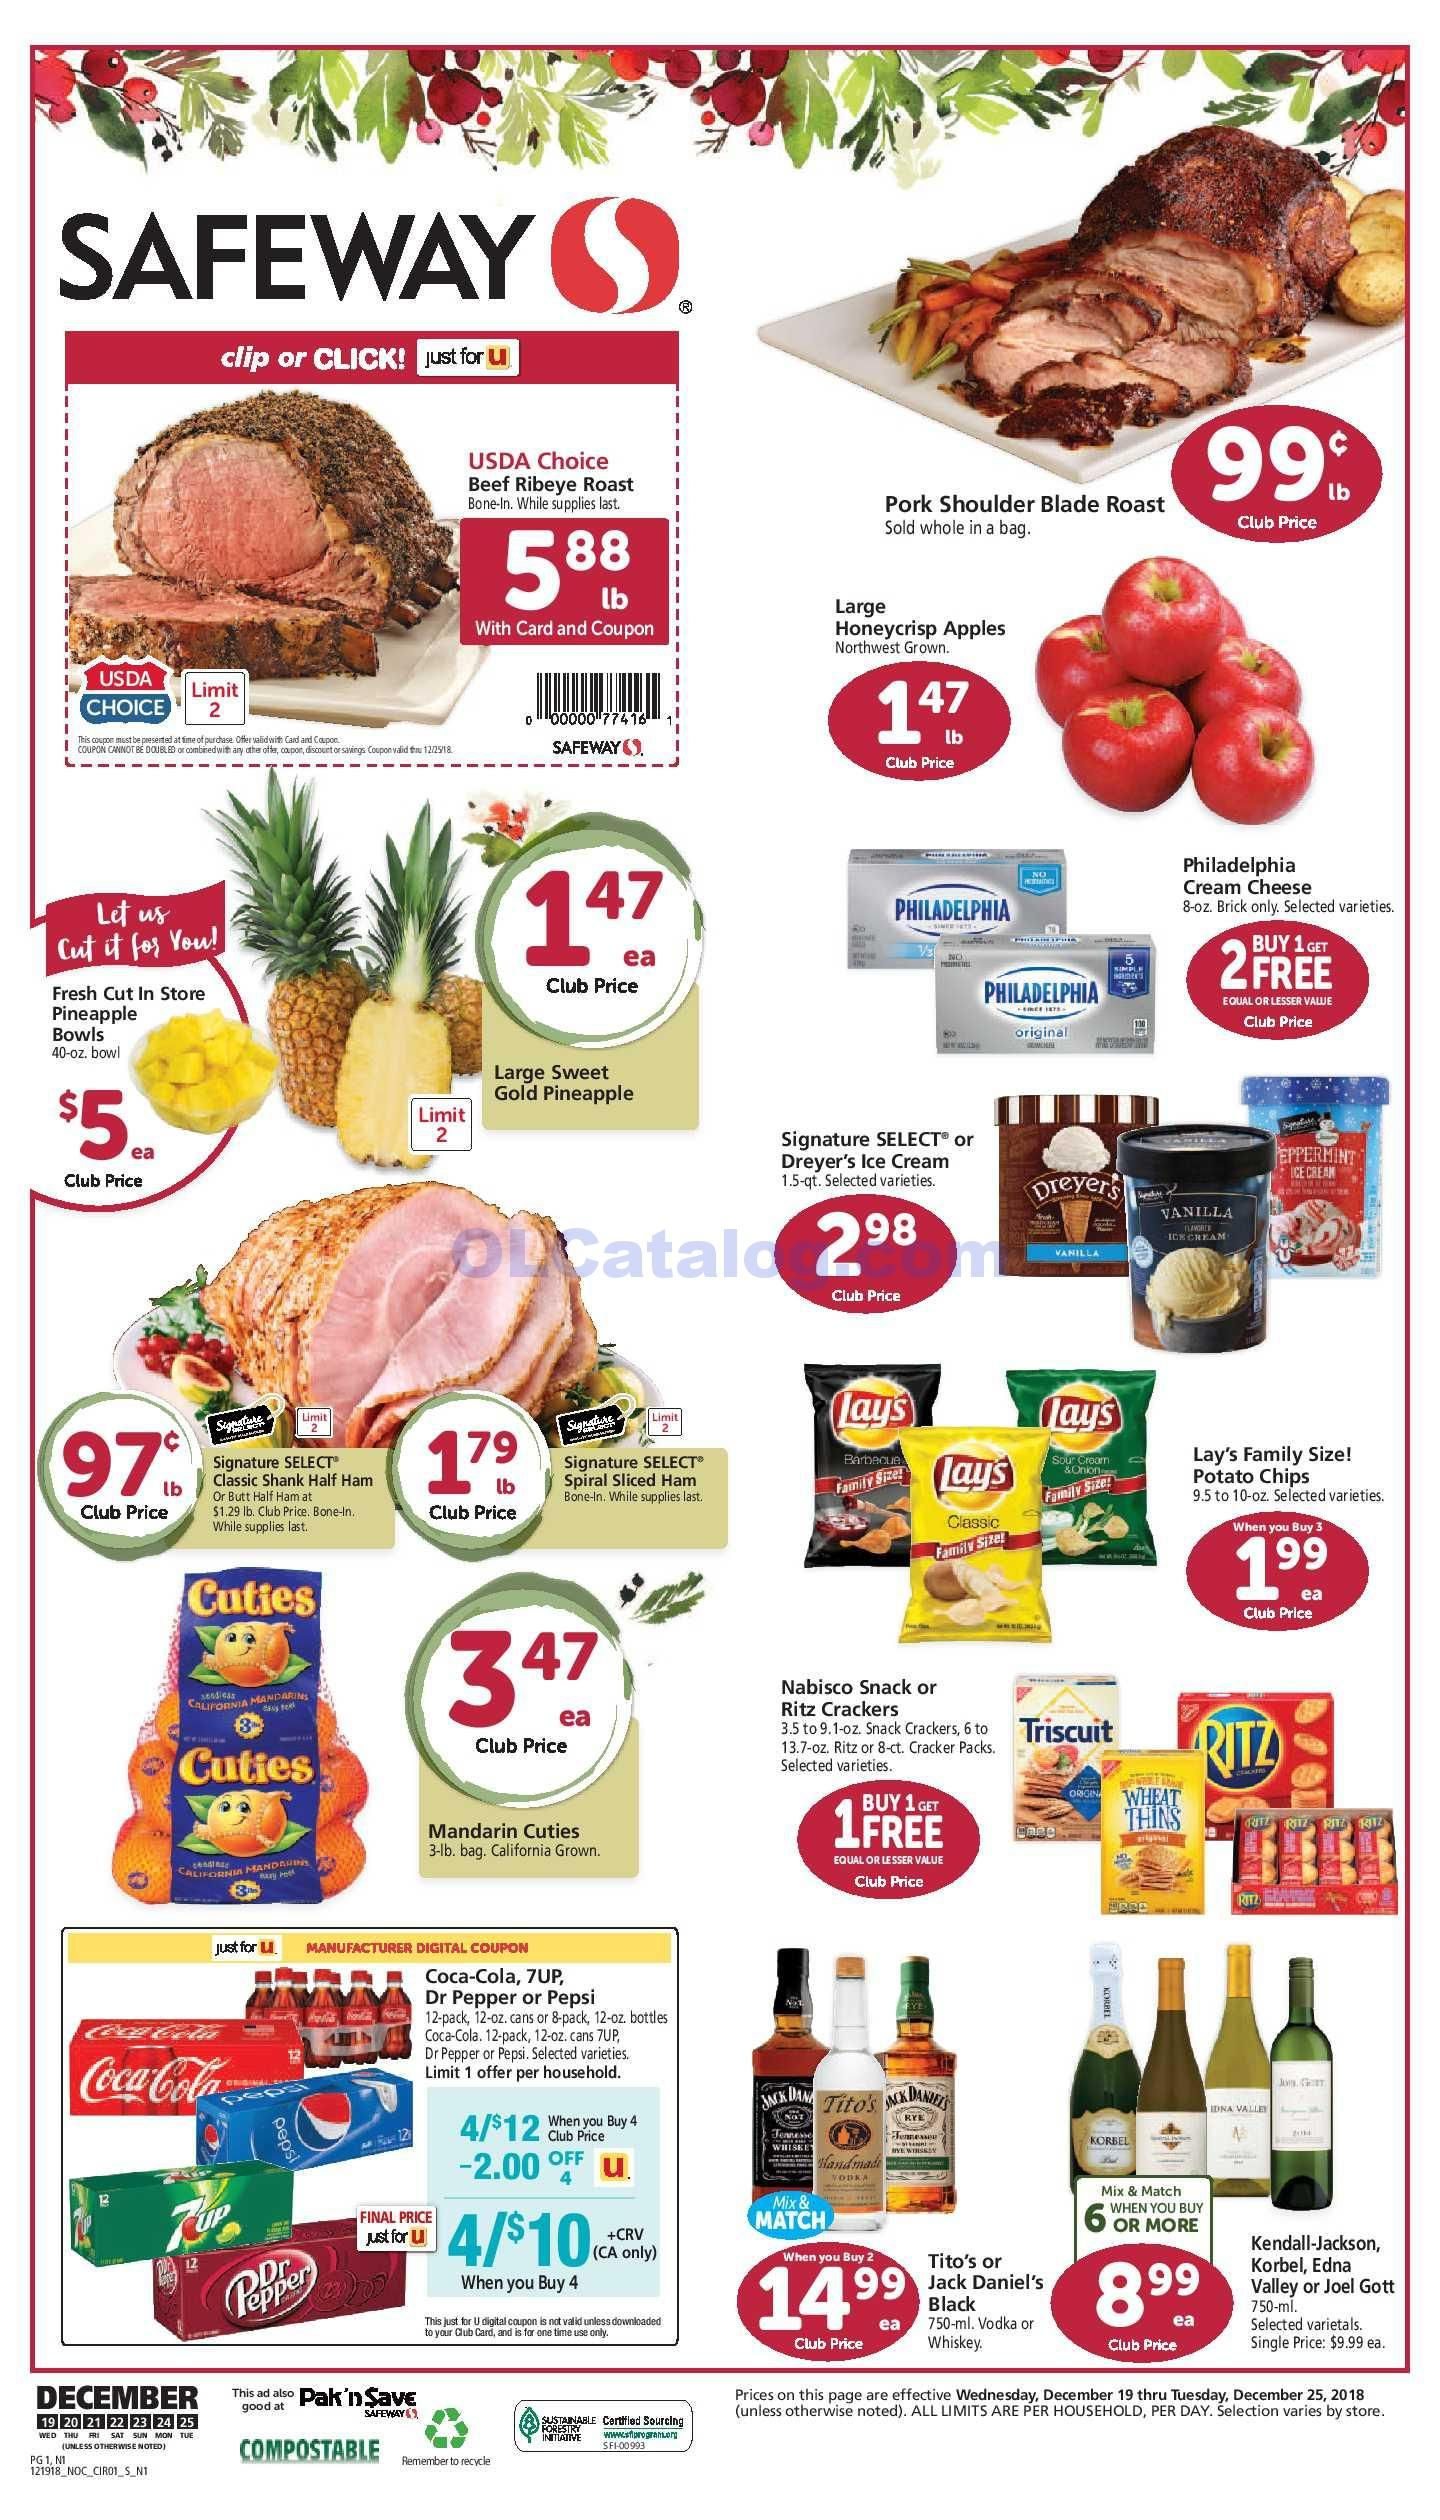 Safeway Weekly ad December 19 25, 2018. Find Latest